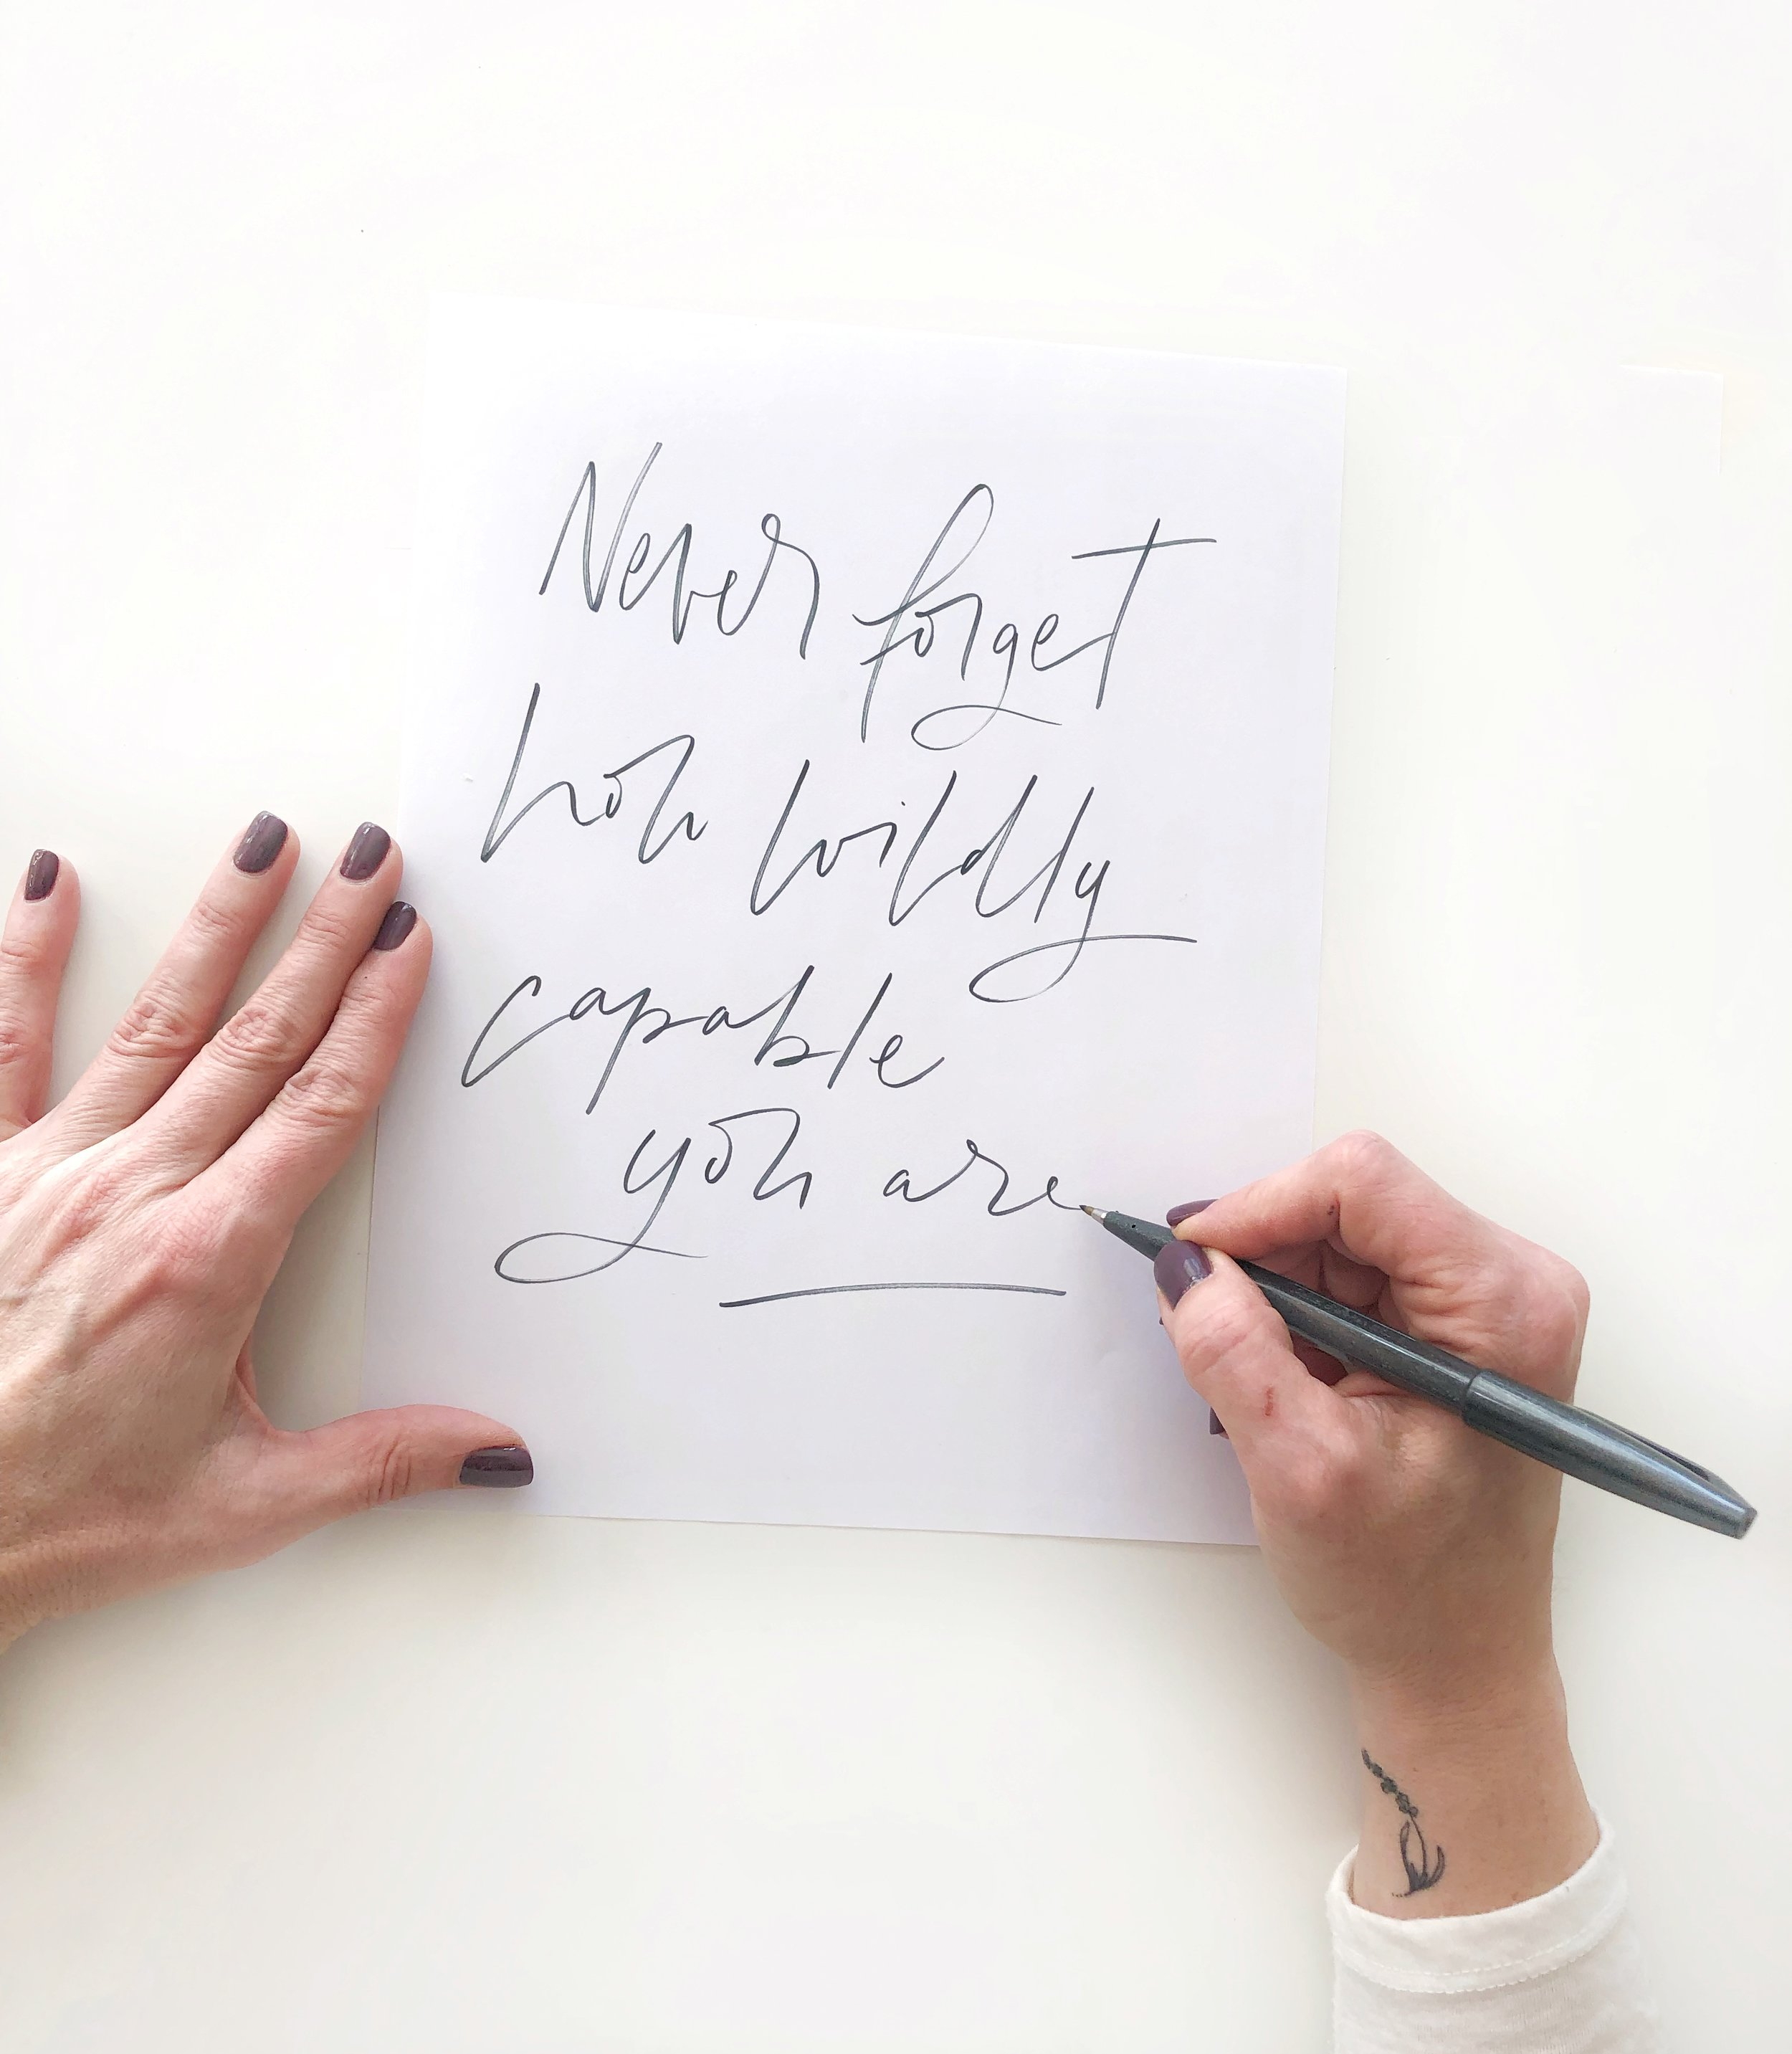 Pick a new quote and write it out for national handwriting day